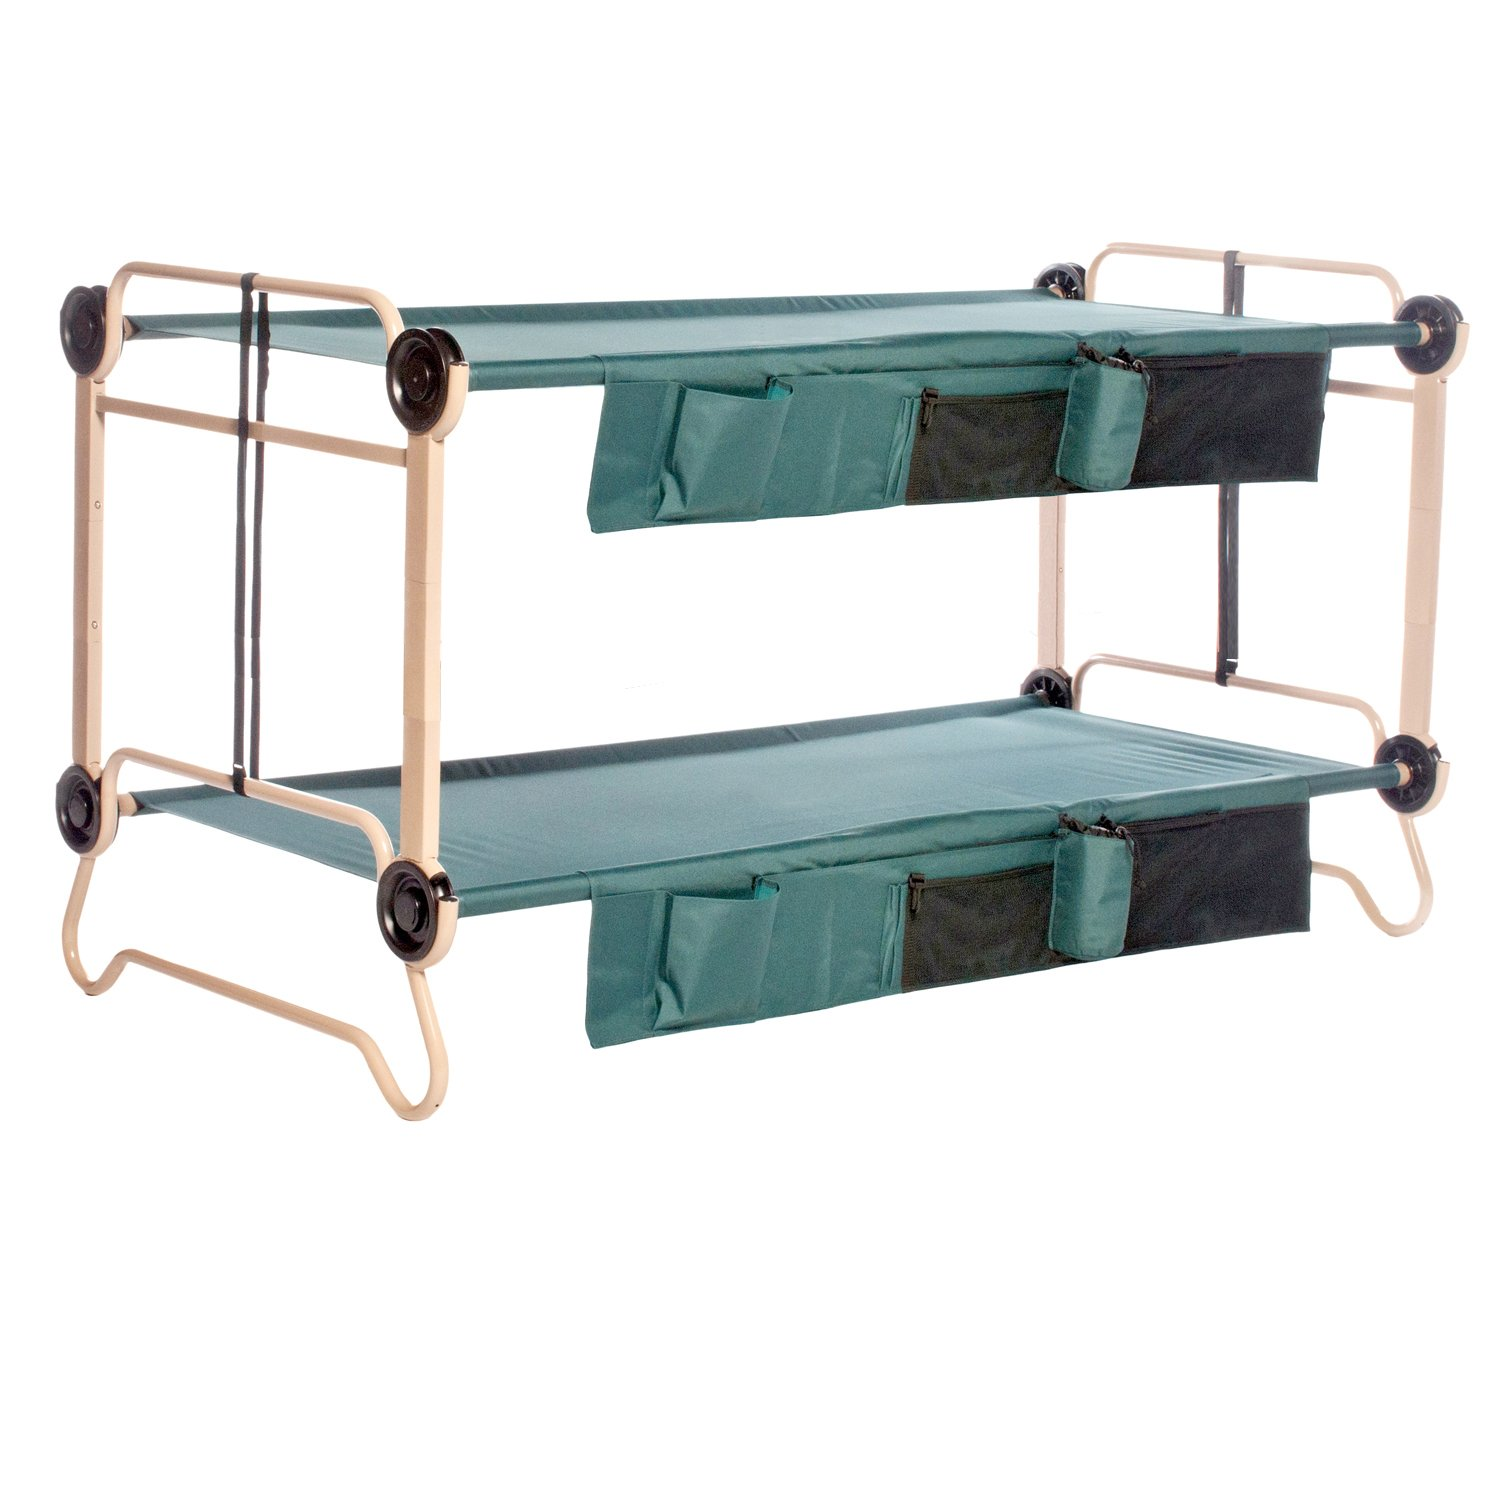 Amazon.com : Disc-O-Bed X-Large with Organizers and Leg Extension ...